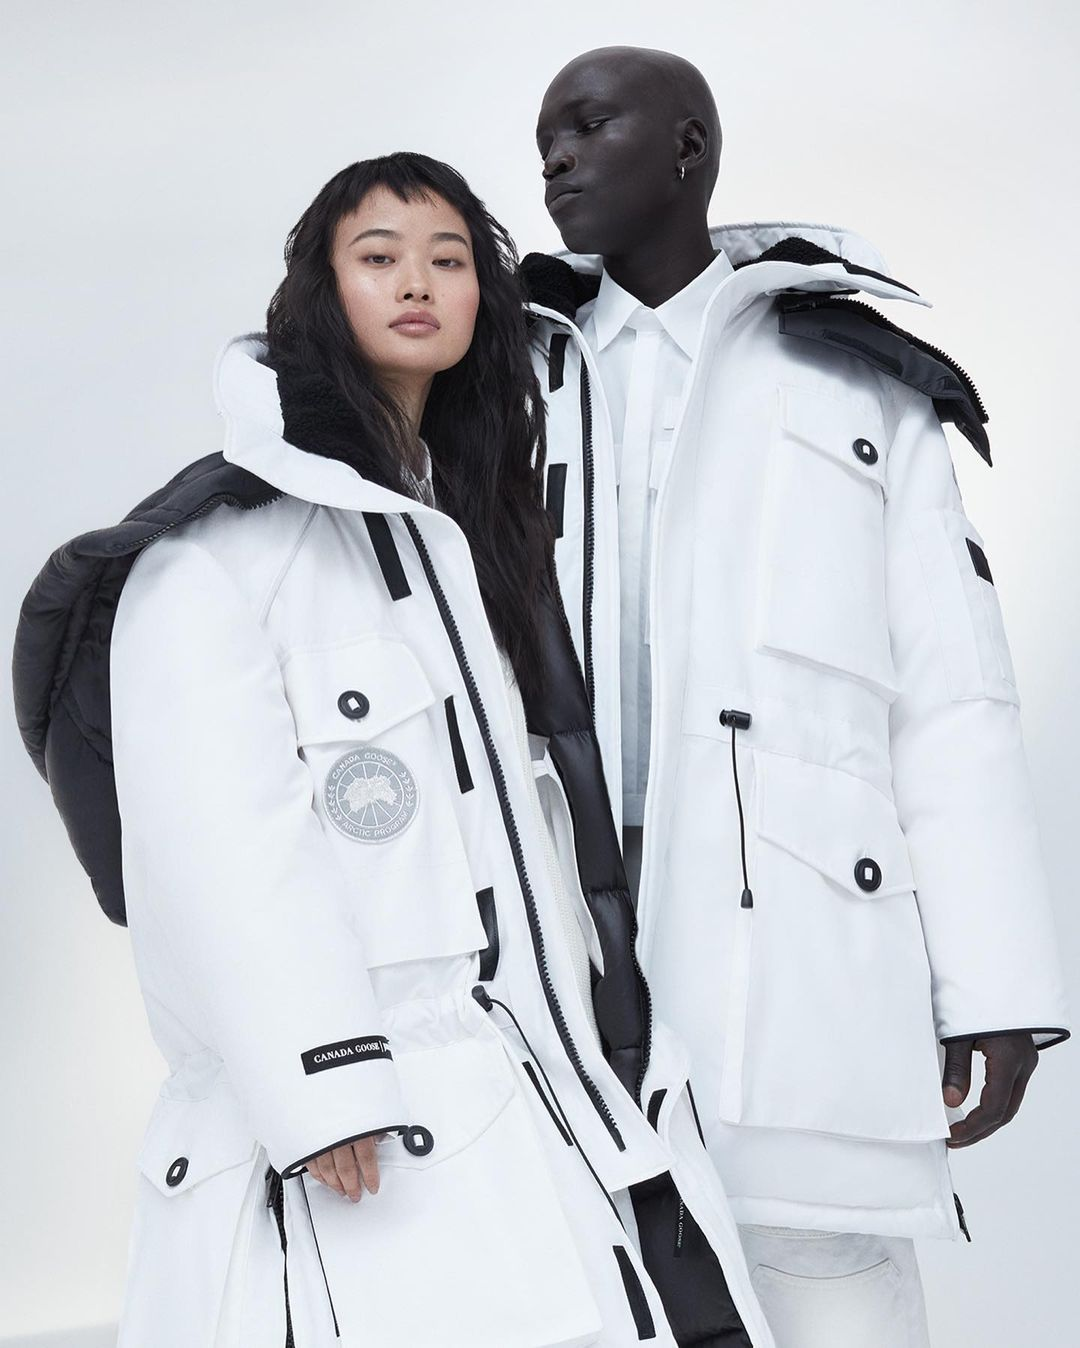 two people wearing white winter jackets